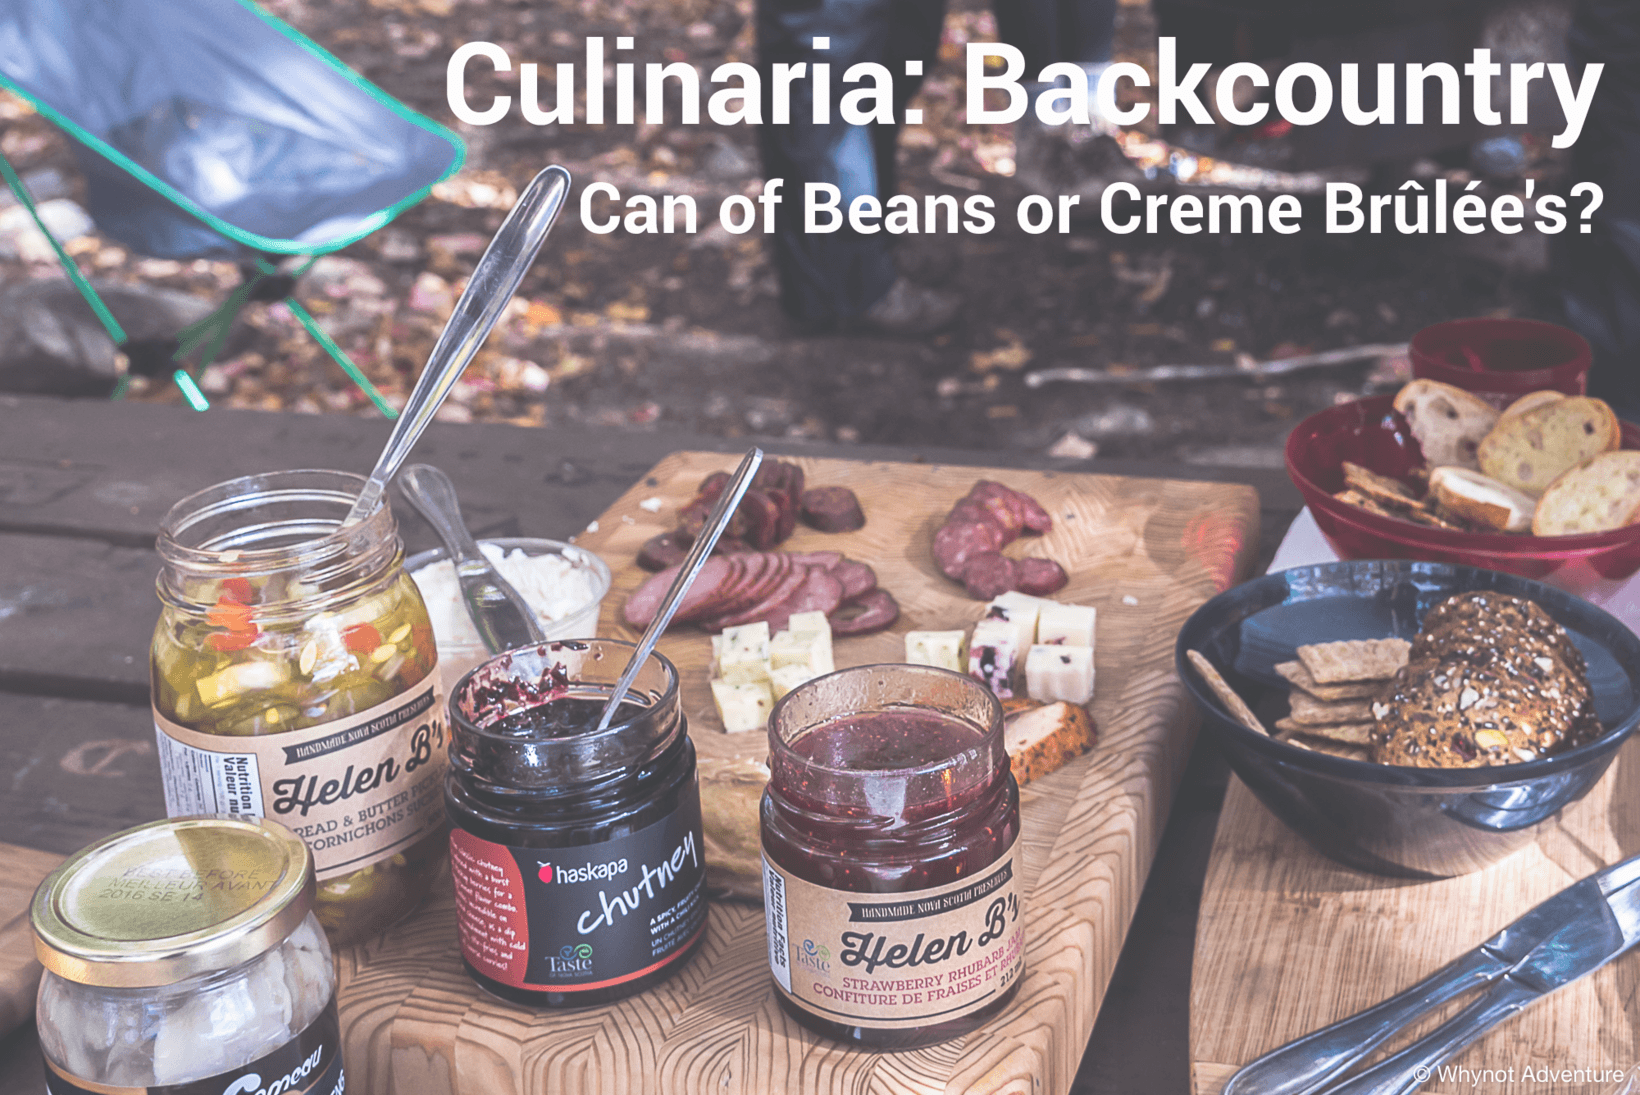 Culinaria: Backcountry